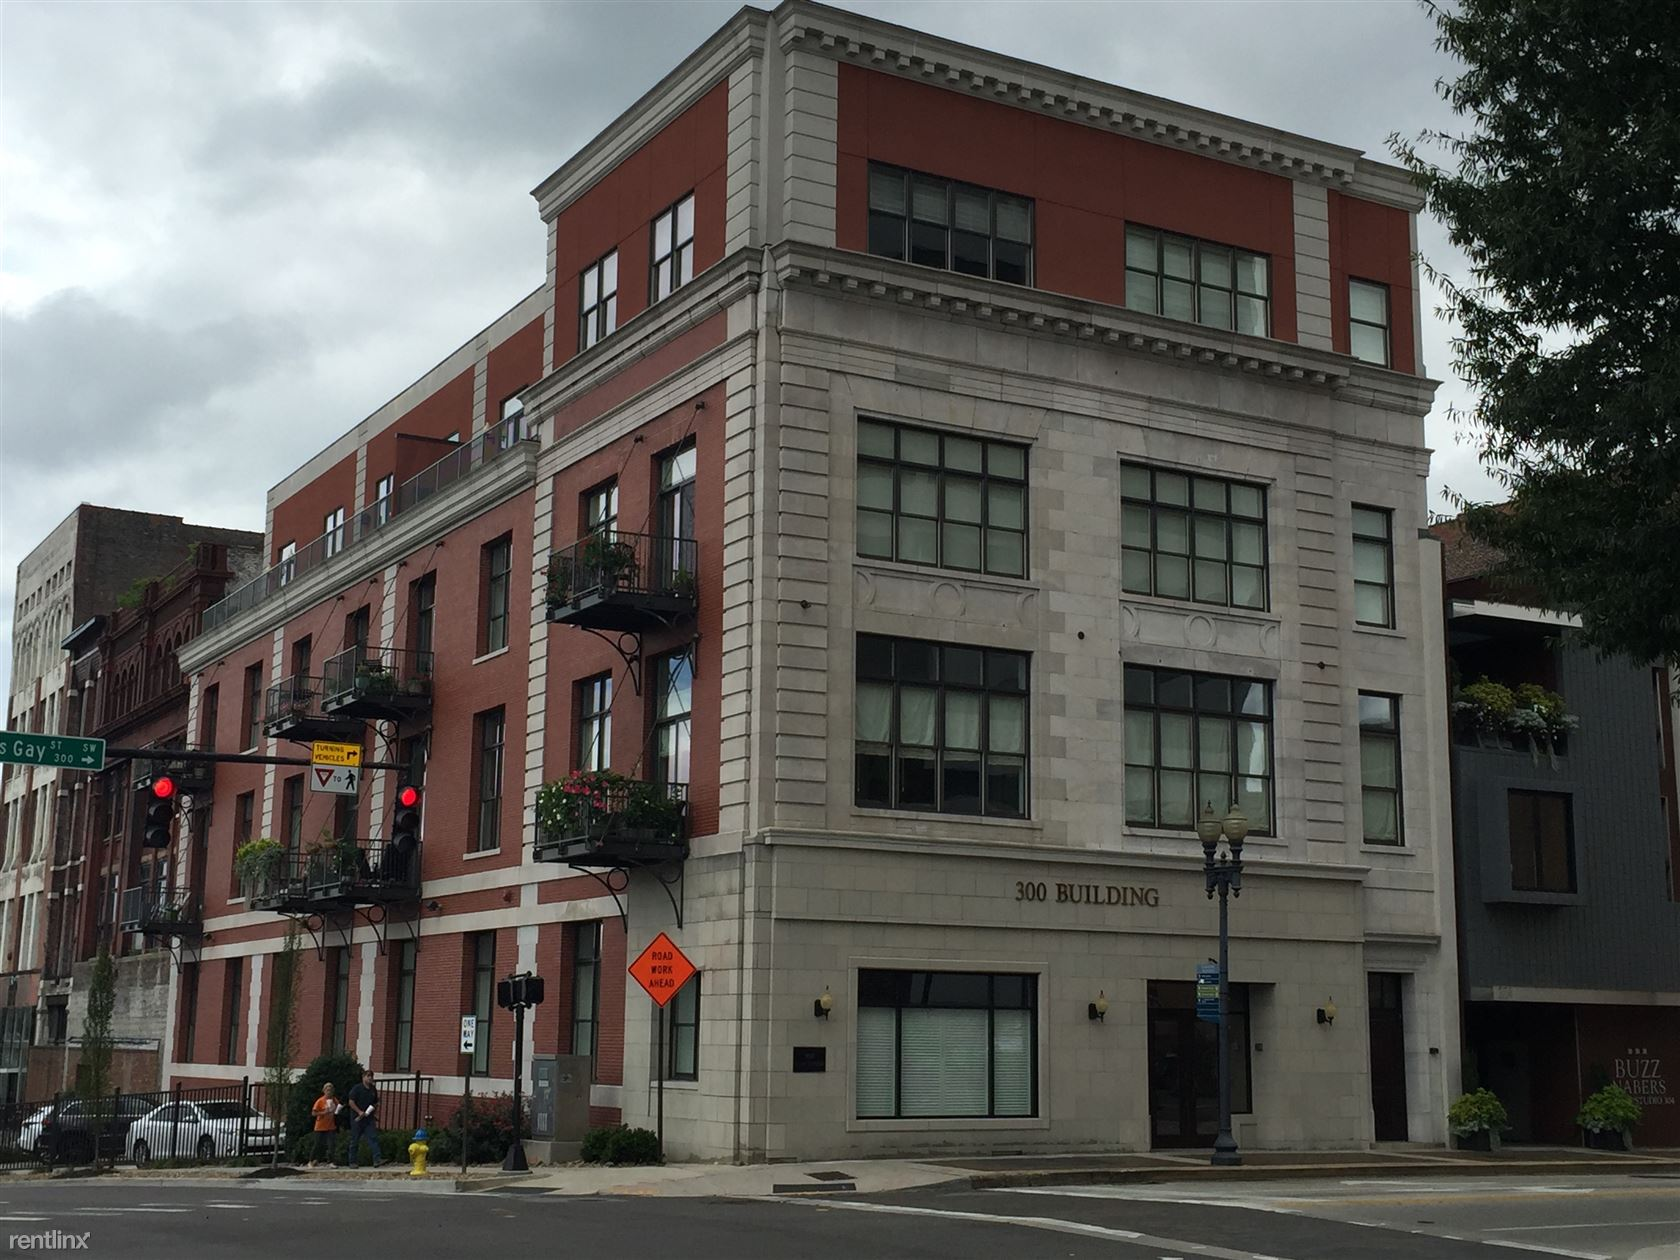 300 S. Gay St #302, Knoxville, TN - $2,700